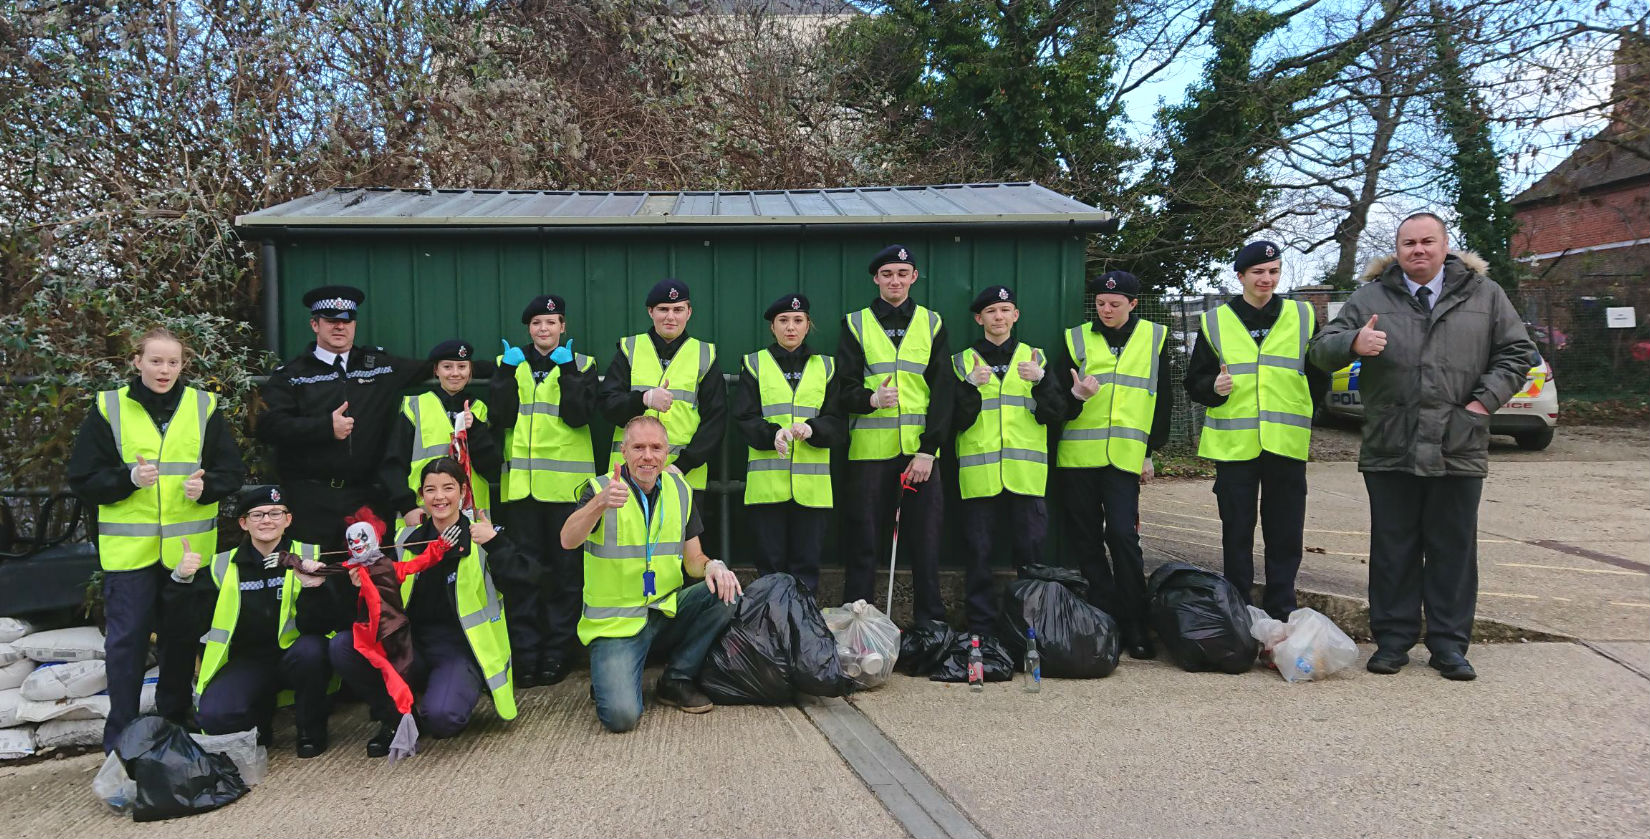 A photo of Canterbury and Dover Police Cadets lined up in high vis jackets giving the thumbs up with bags of collected litter at their feet